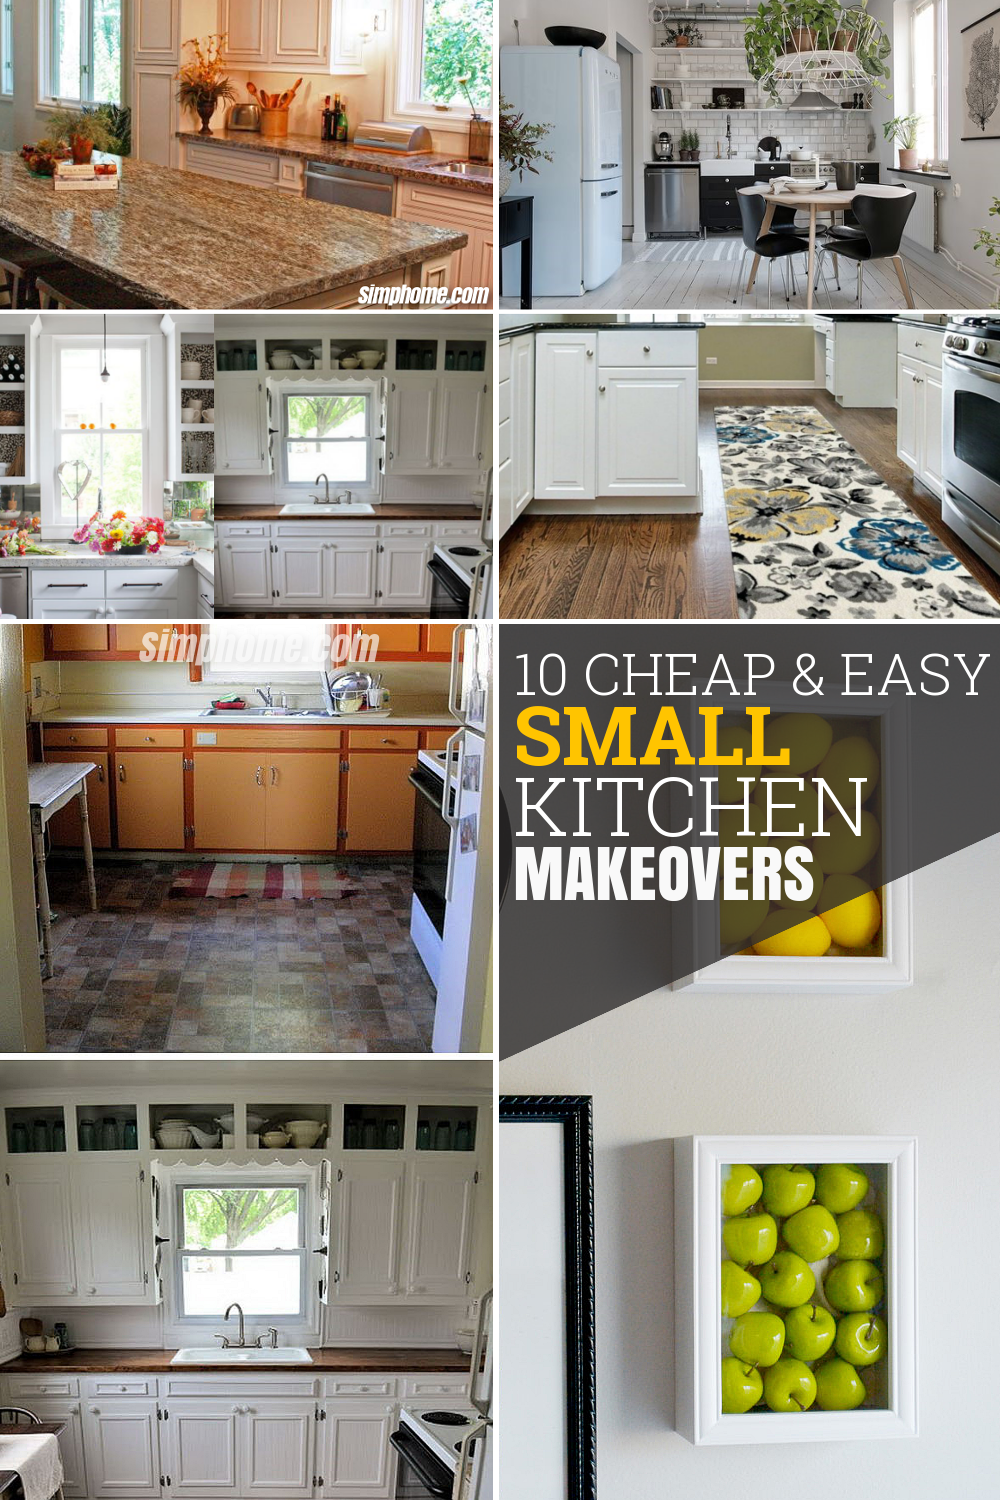 10 Cheap and Easy Small Kitchen Makeovers via Simphome com Featured Pinterest